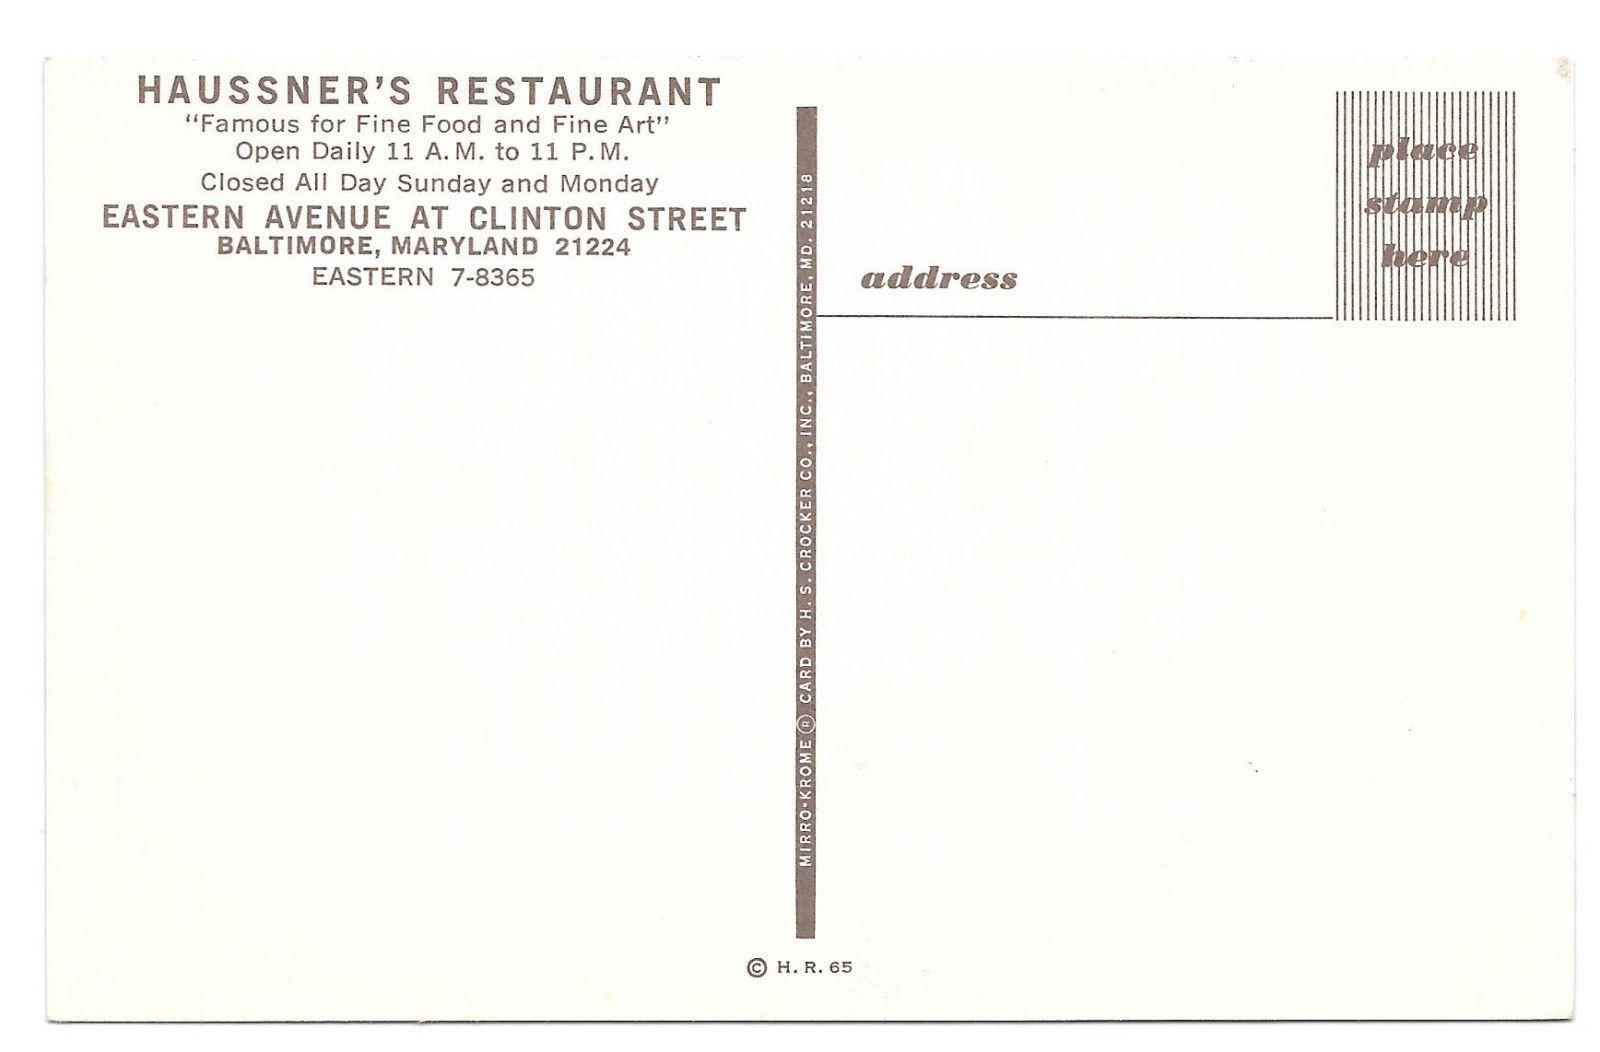 MD Baltimore Haussner's Restaurant Food and Art Eastern Avenue Vtg Postcard